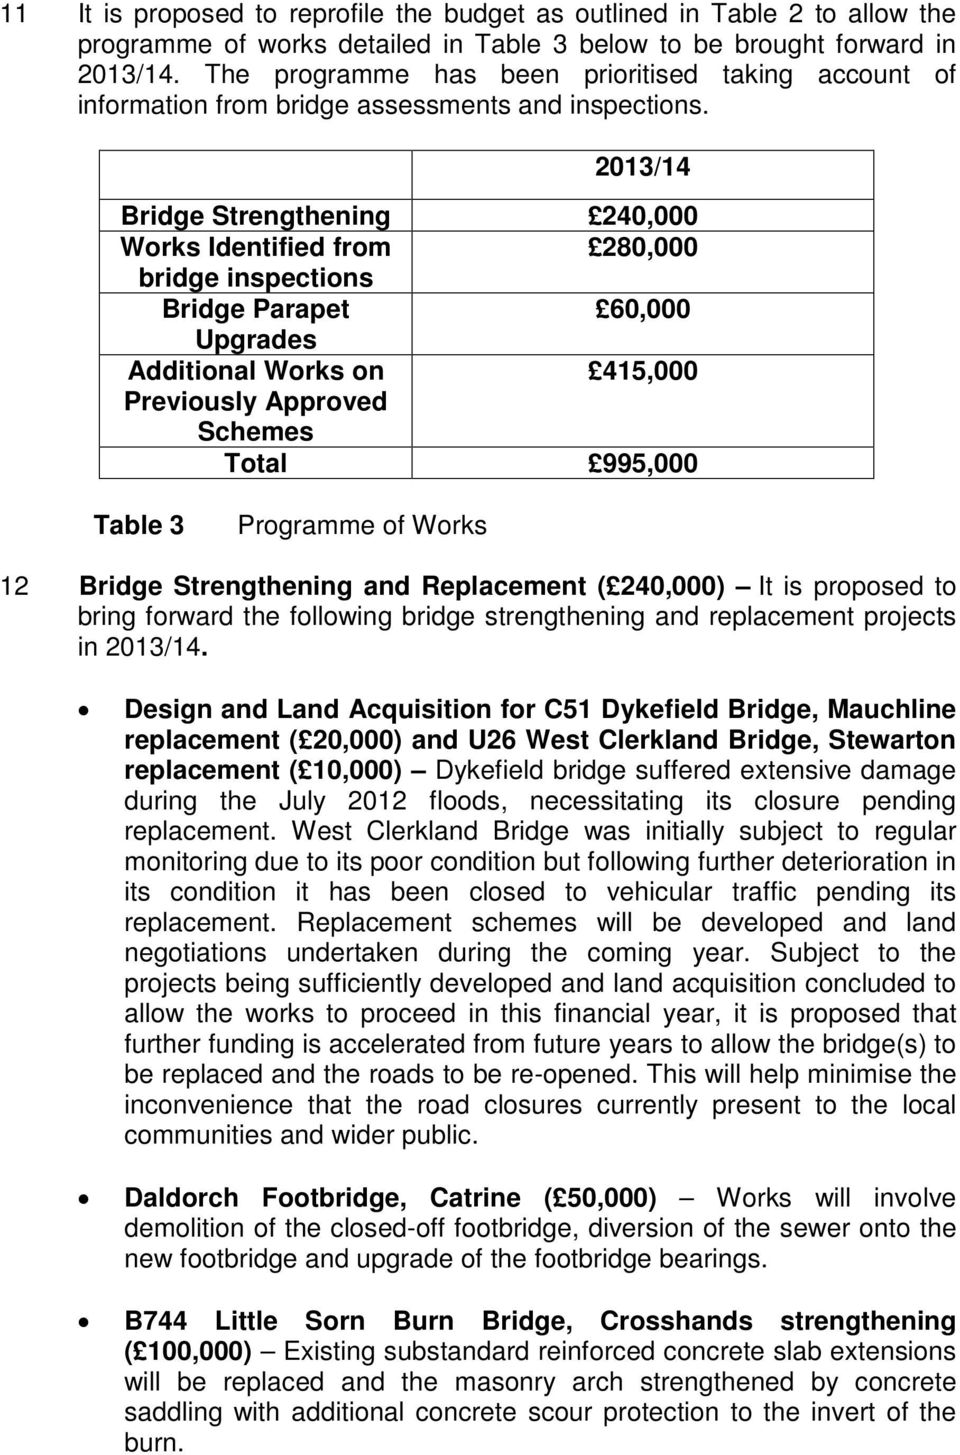 2013/14 Bridge Strengthening 240,000 Works Identified from 280,000 bridge inspections Bridge Parapet 60,000 Upgrades Additional Works on 415,000 Previously Approved Schemes Total 995,000 Table 3